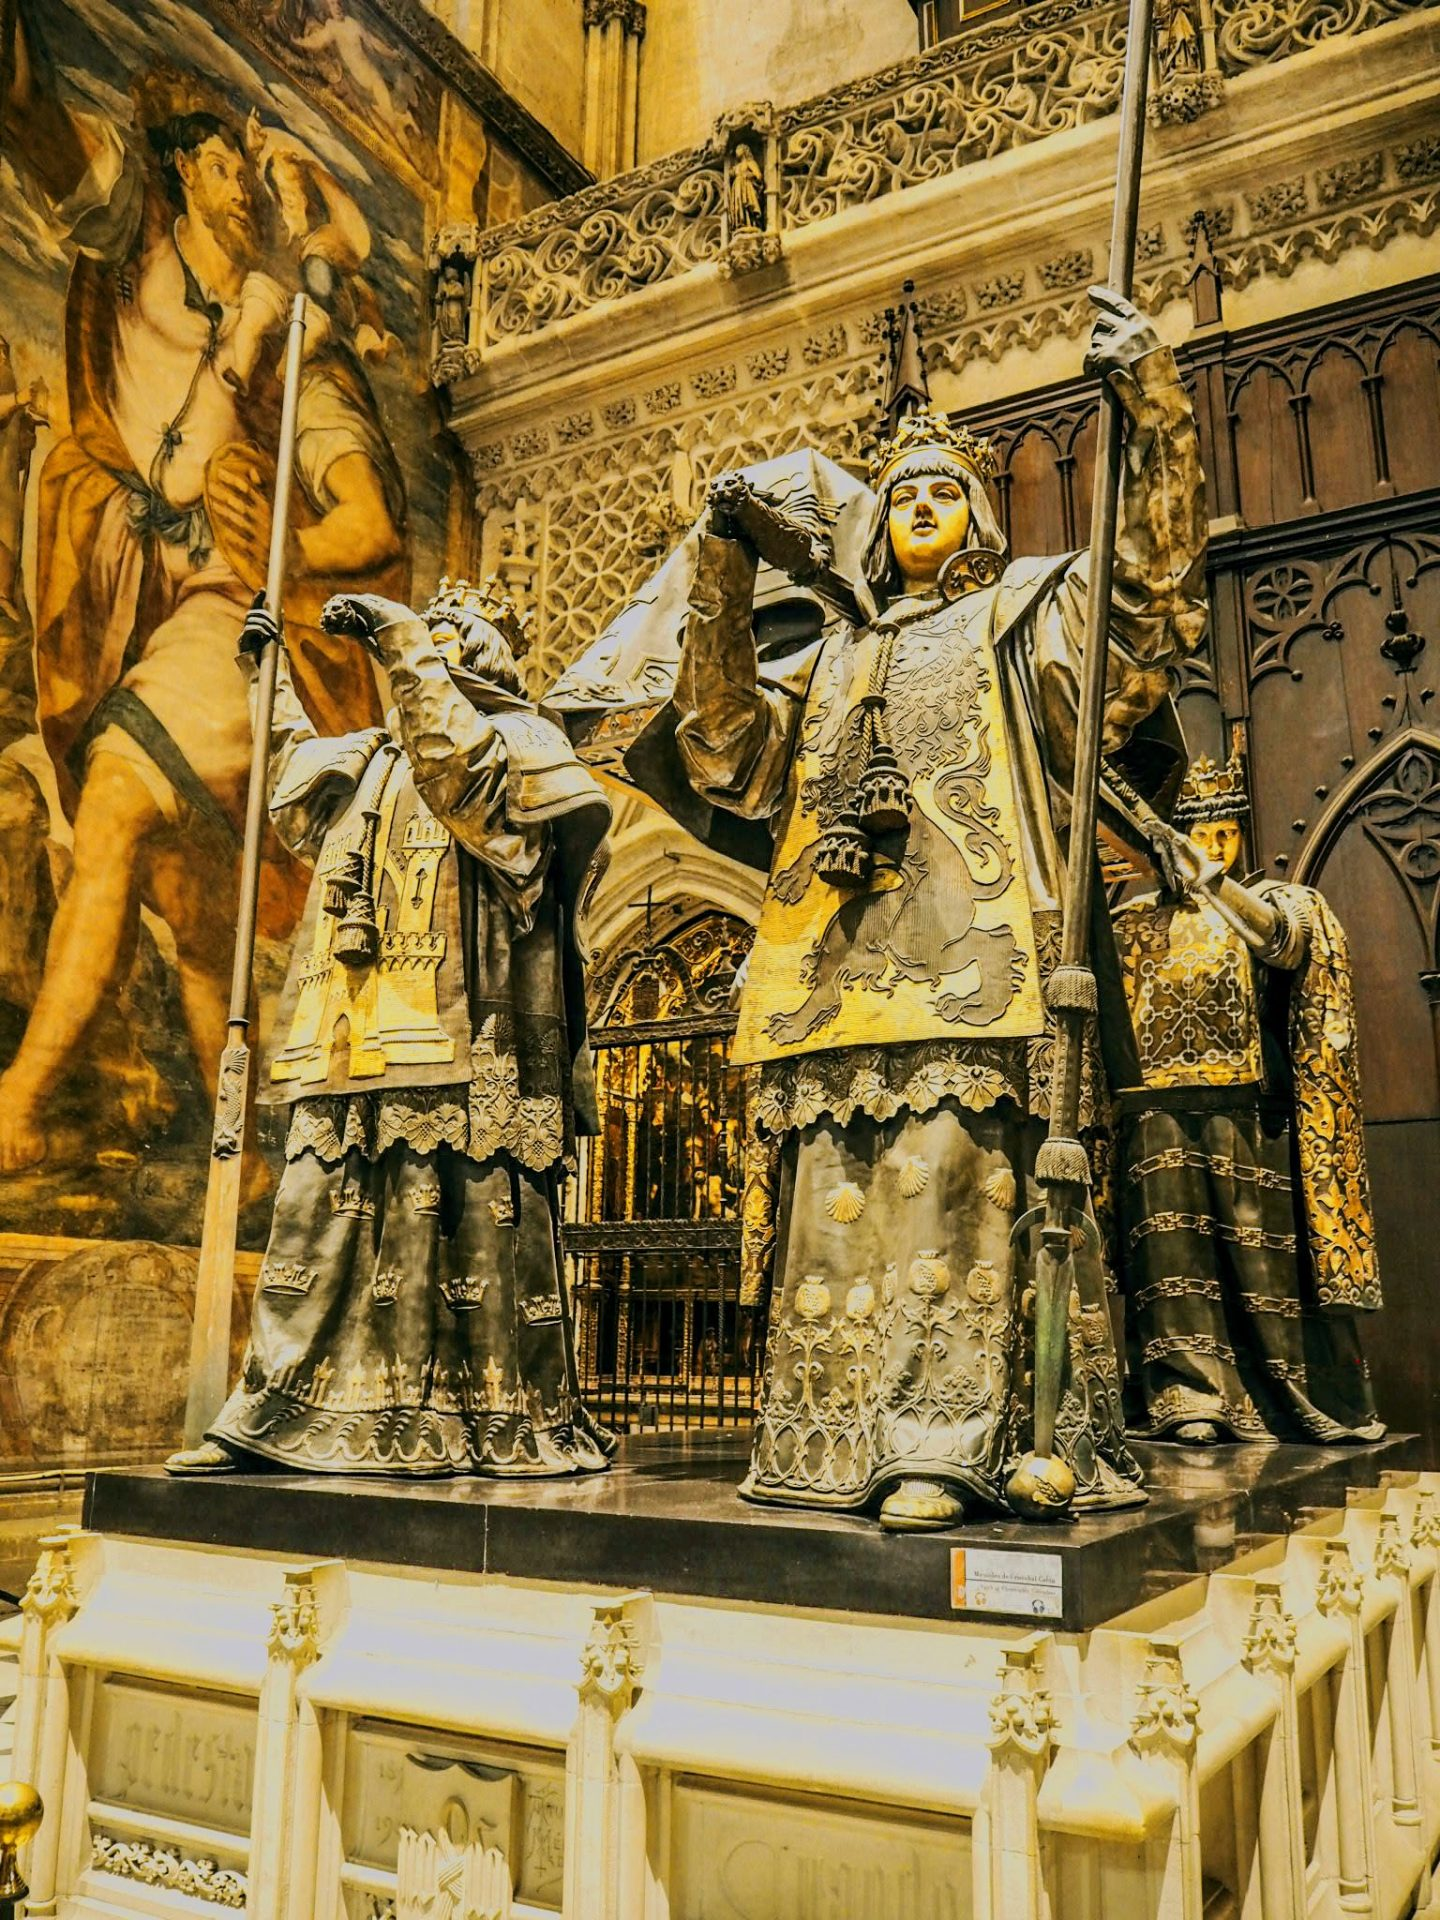 Christopher Columbus' Tomb